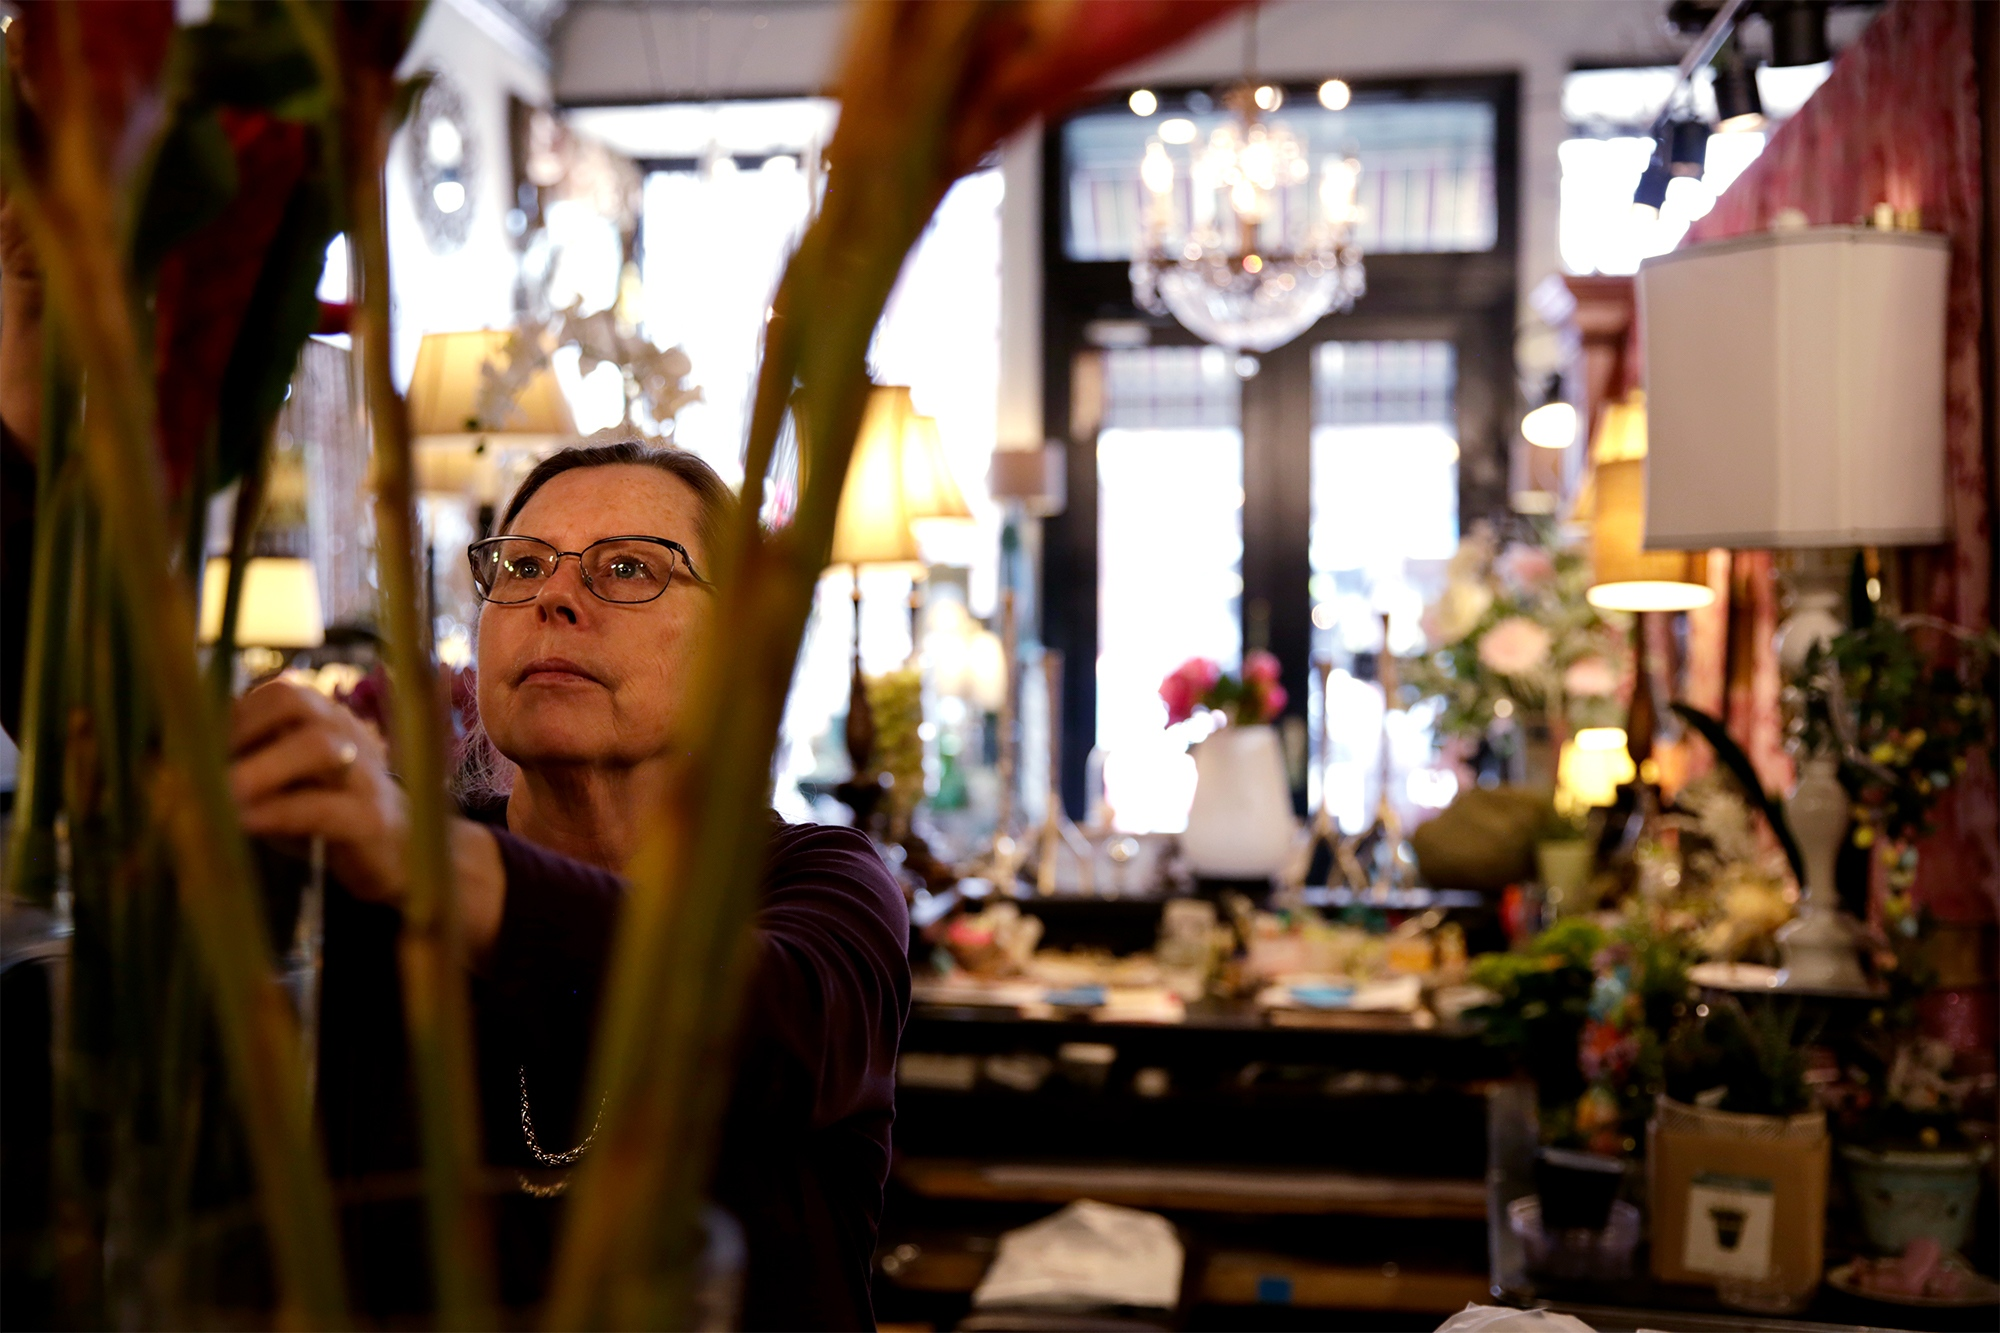 Ruth Lahue spends her day arranging flowers. She has owned My Secret Garden in downtown Columbia for 39 years. She started the business out of her house in 1979.